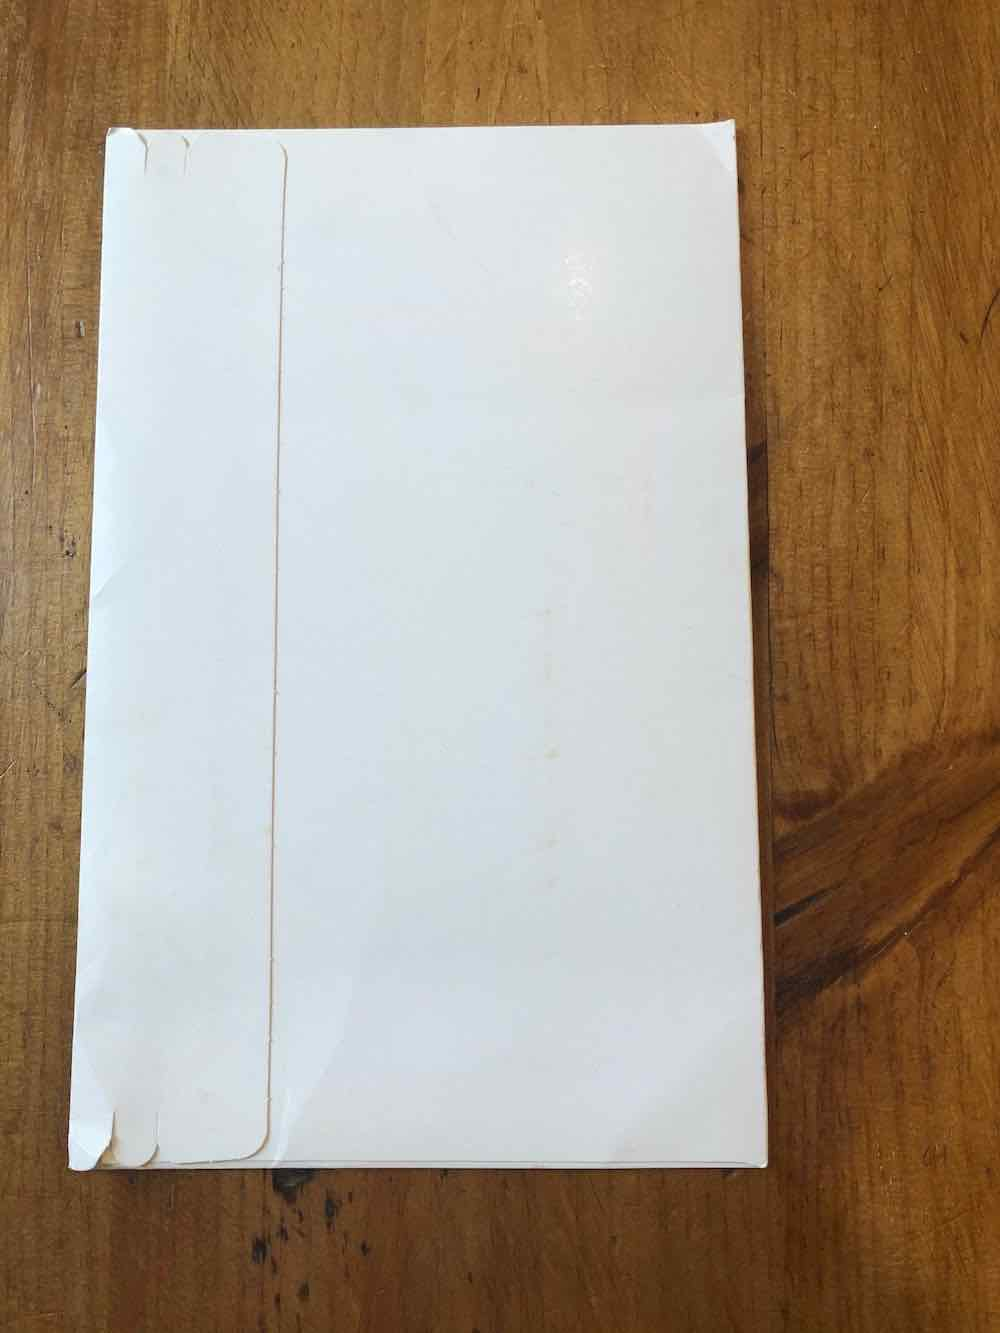 A vertically positioned white wallet sealed envelope, with its flap by the left-hand side, and small incisions at the edges of the flap. Envelope sitting on wood table top.